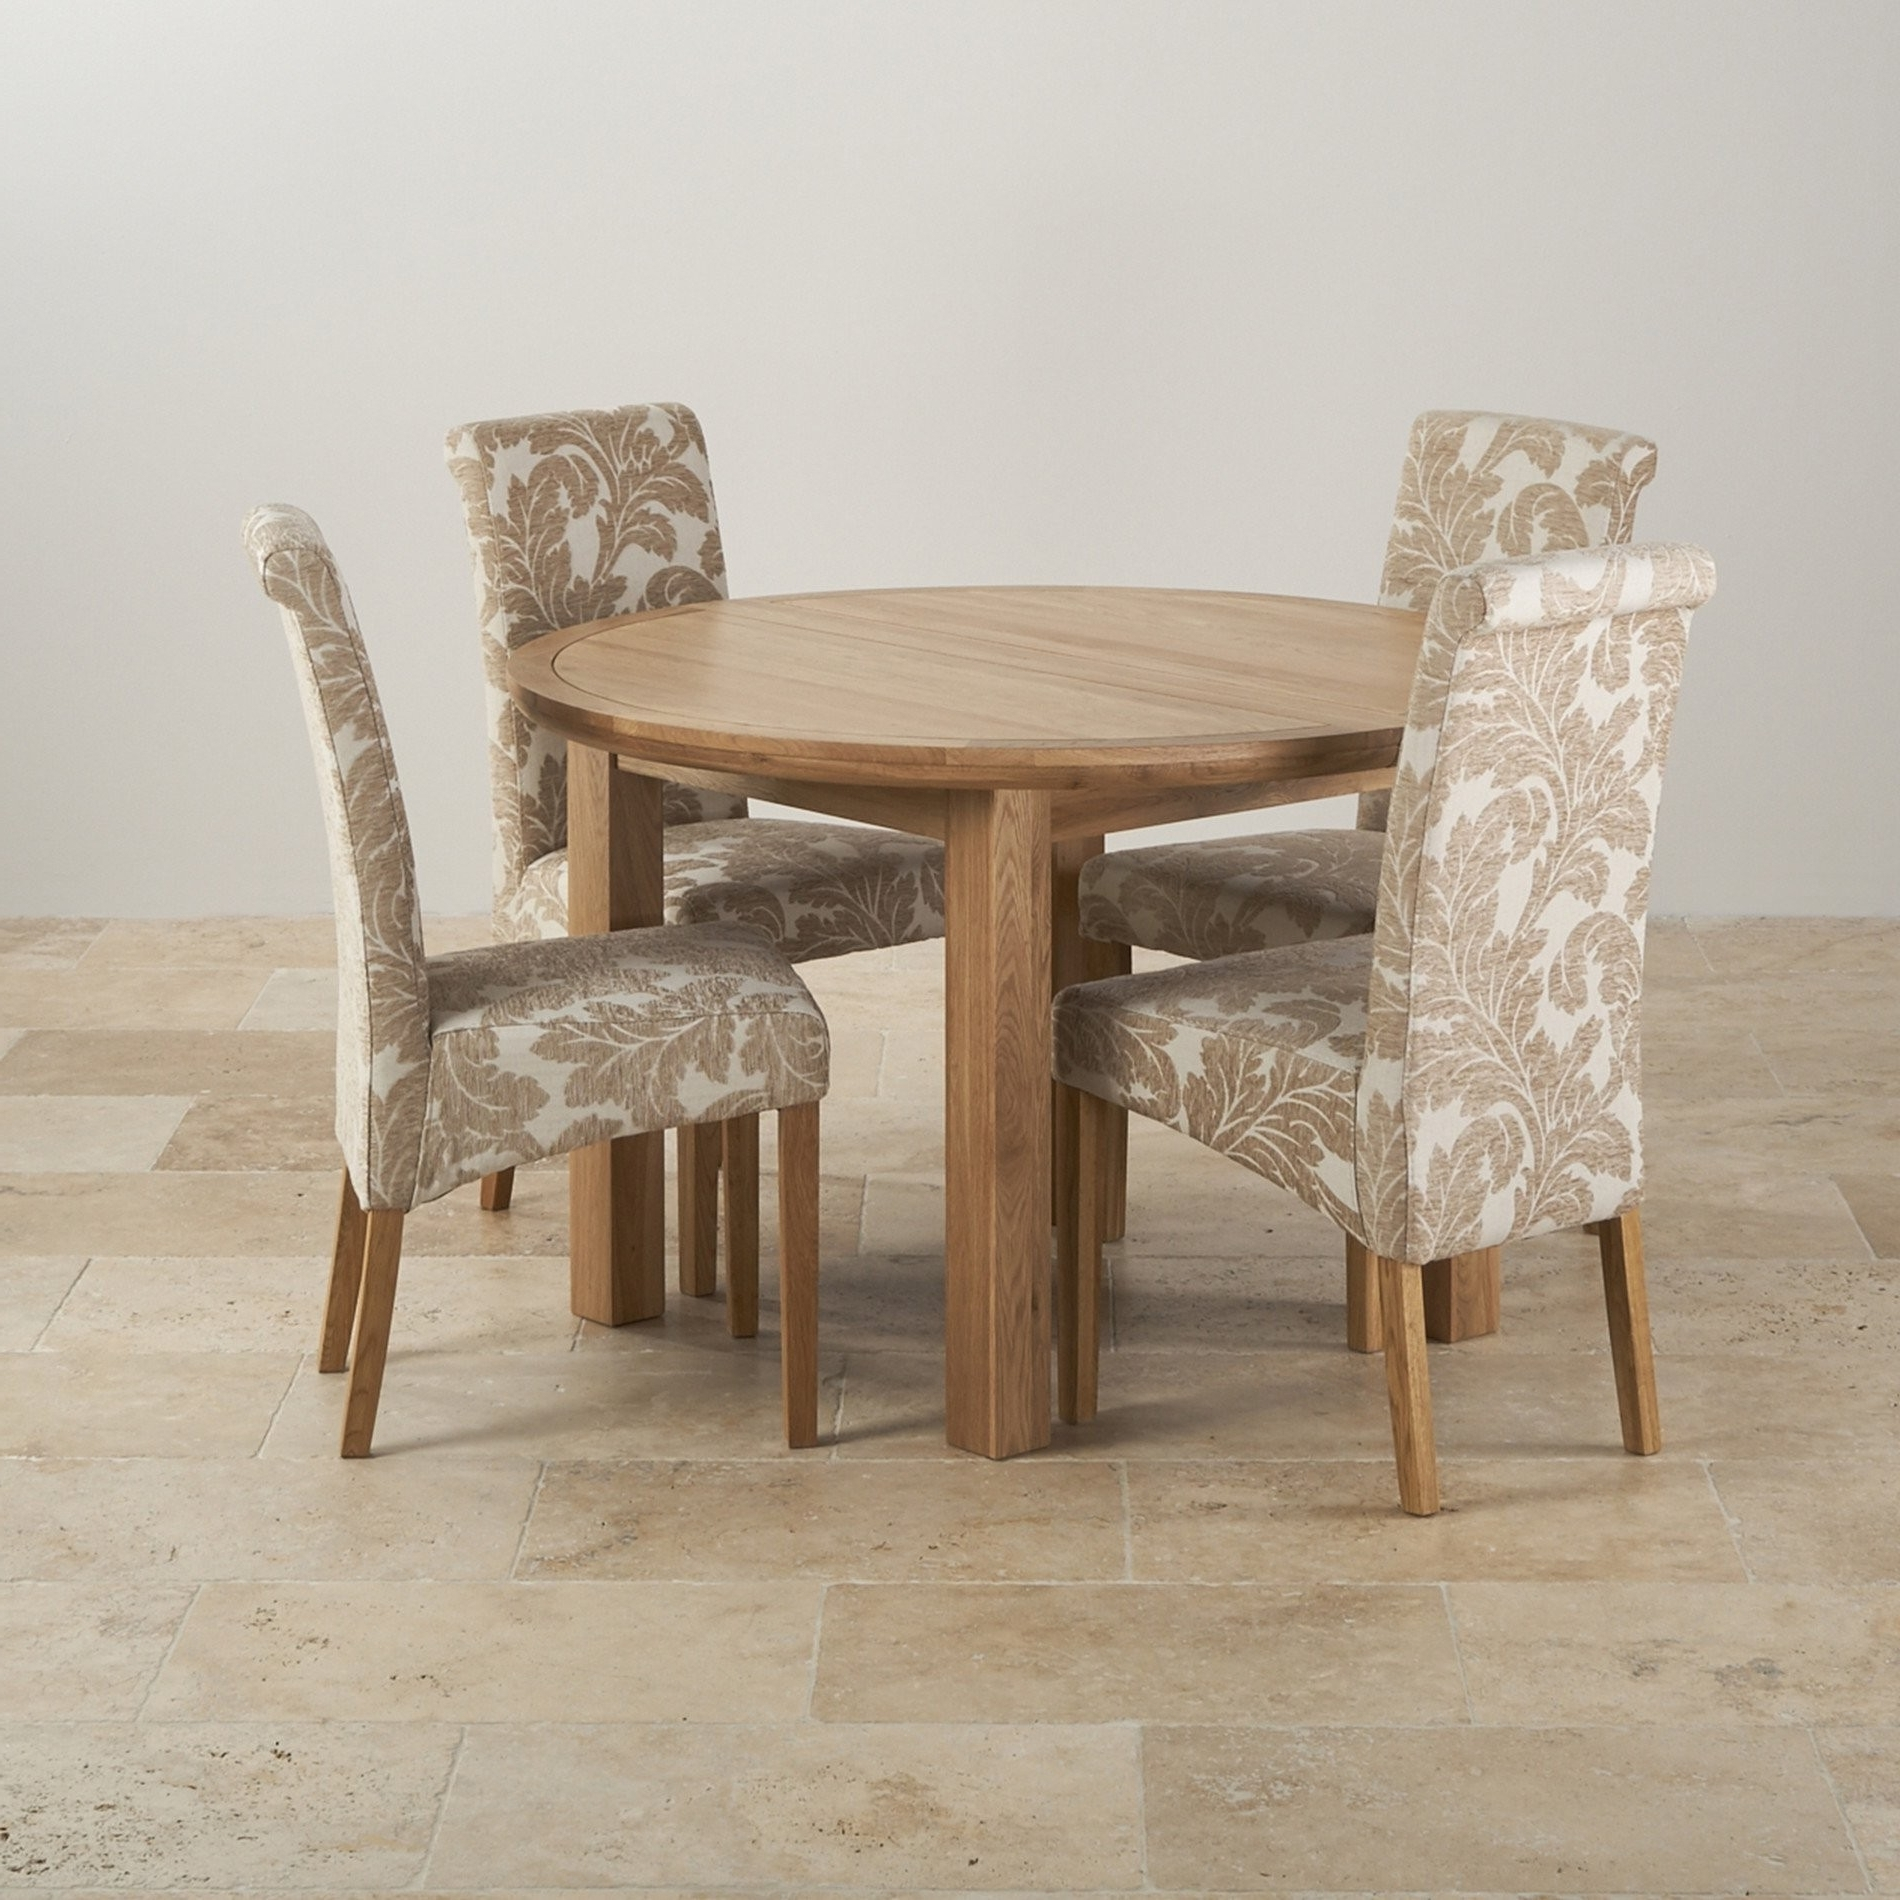 Small Extending Dining Tables And 4 Chairs Within Most Recently Released Small Oak Dining Table And 4 Chairs Best Of Richmond Small Extending (View 22 of 25)